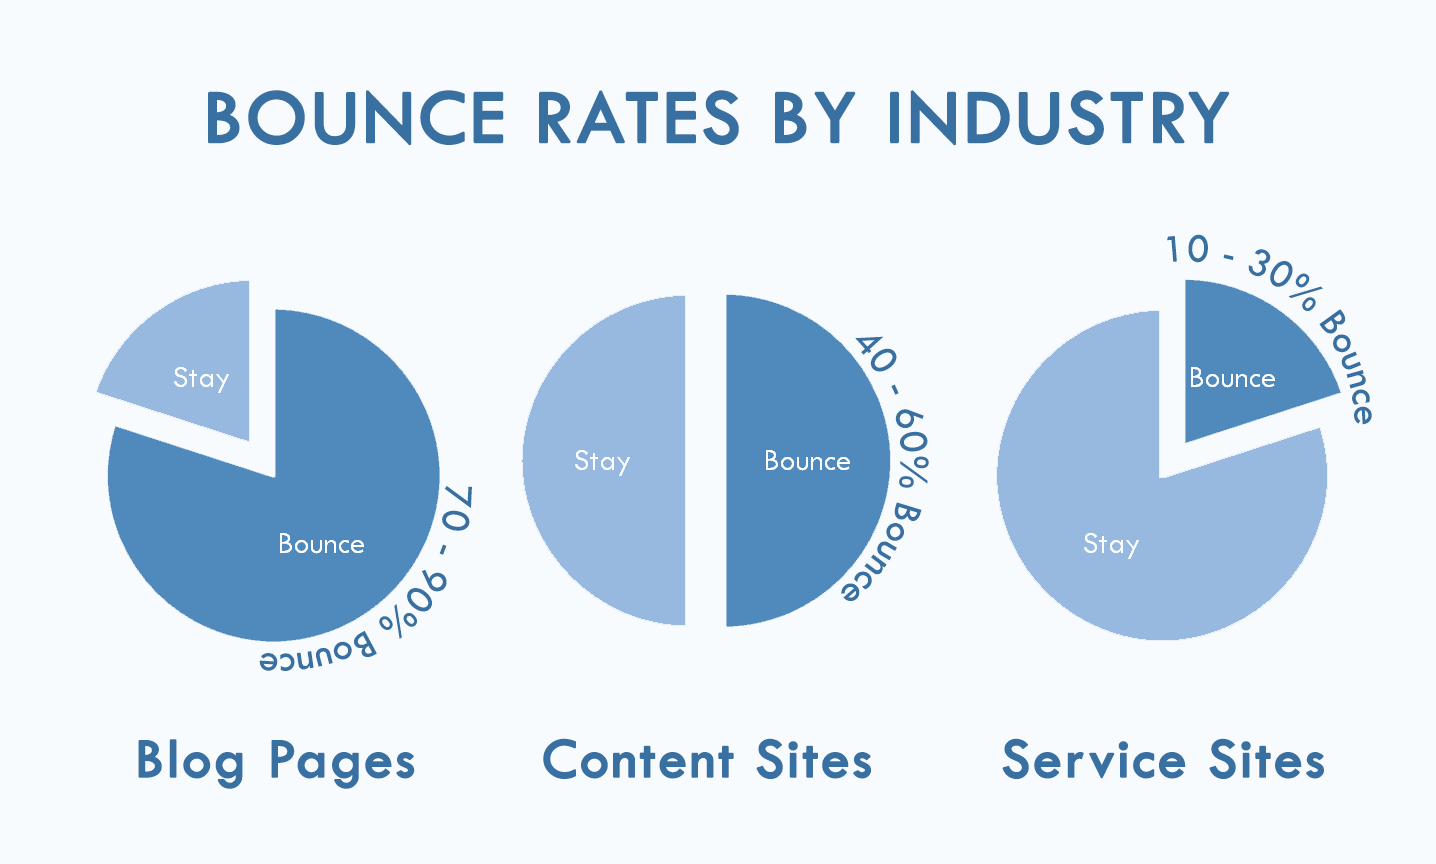 Bounce rates and web traffic